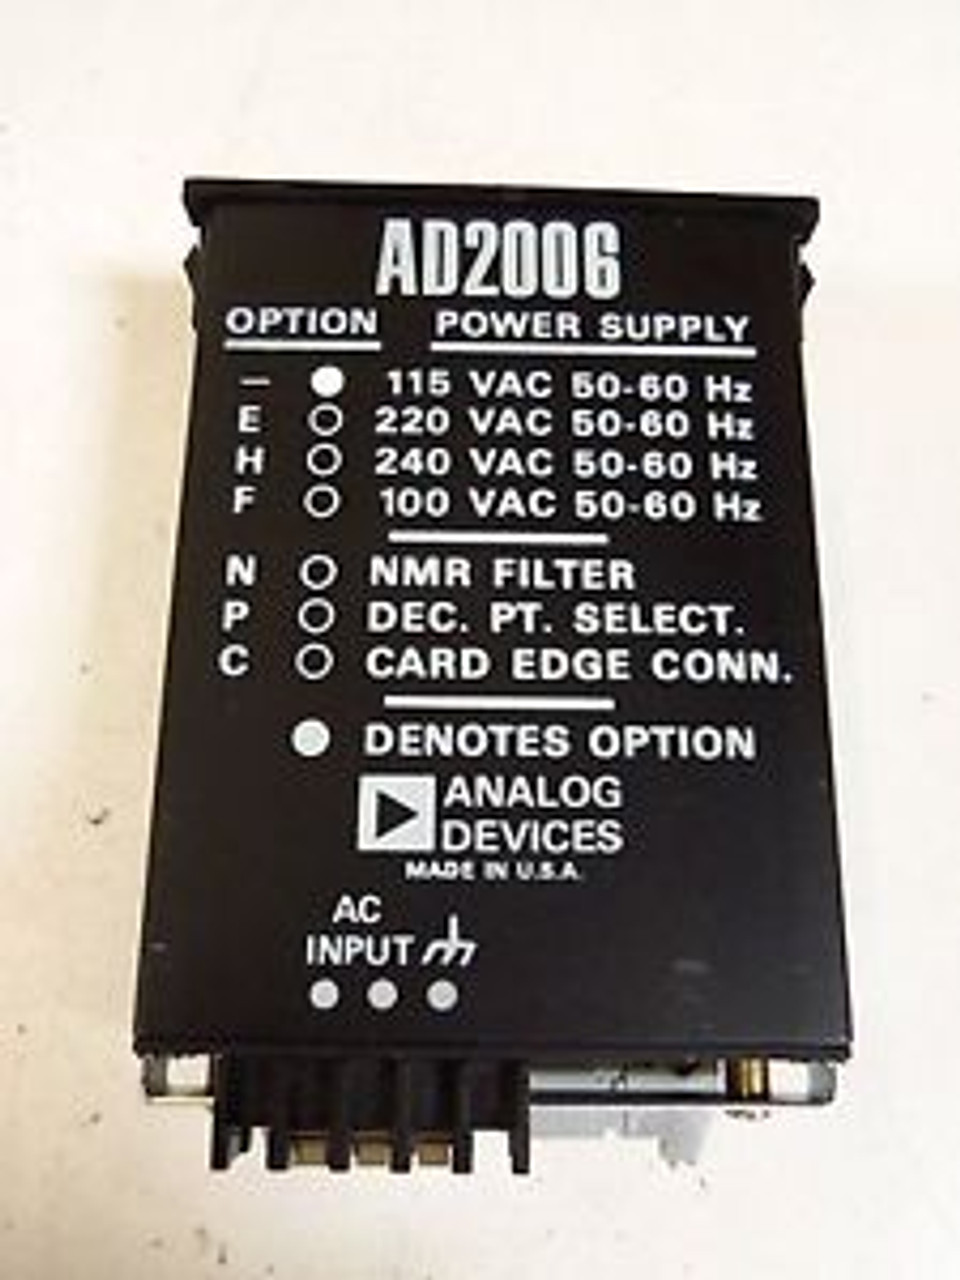 ANALOG DEVICES 3B39 ISOLATED OUTPUT MODULE NEW SEALED CONDITION IN PACKAGE